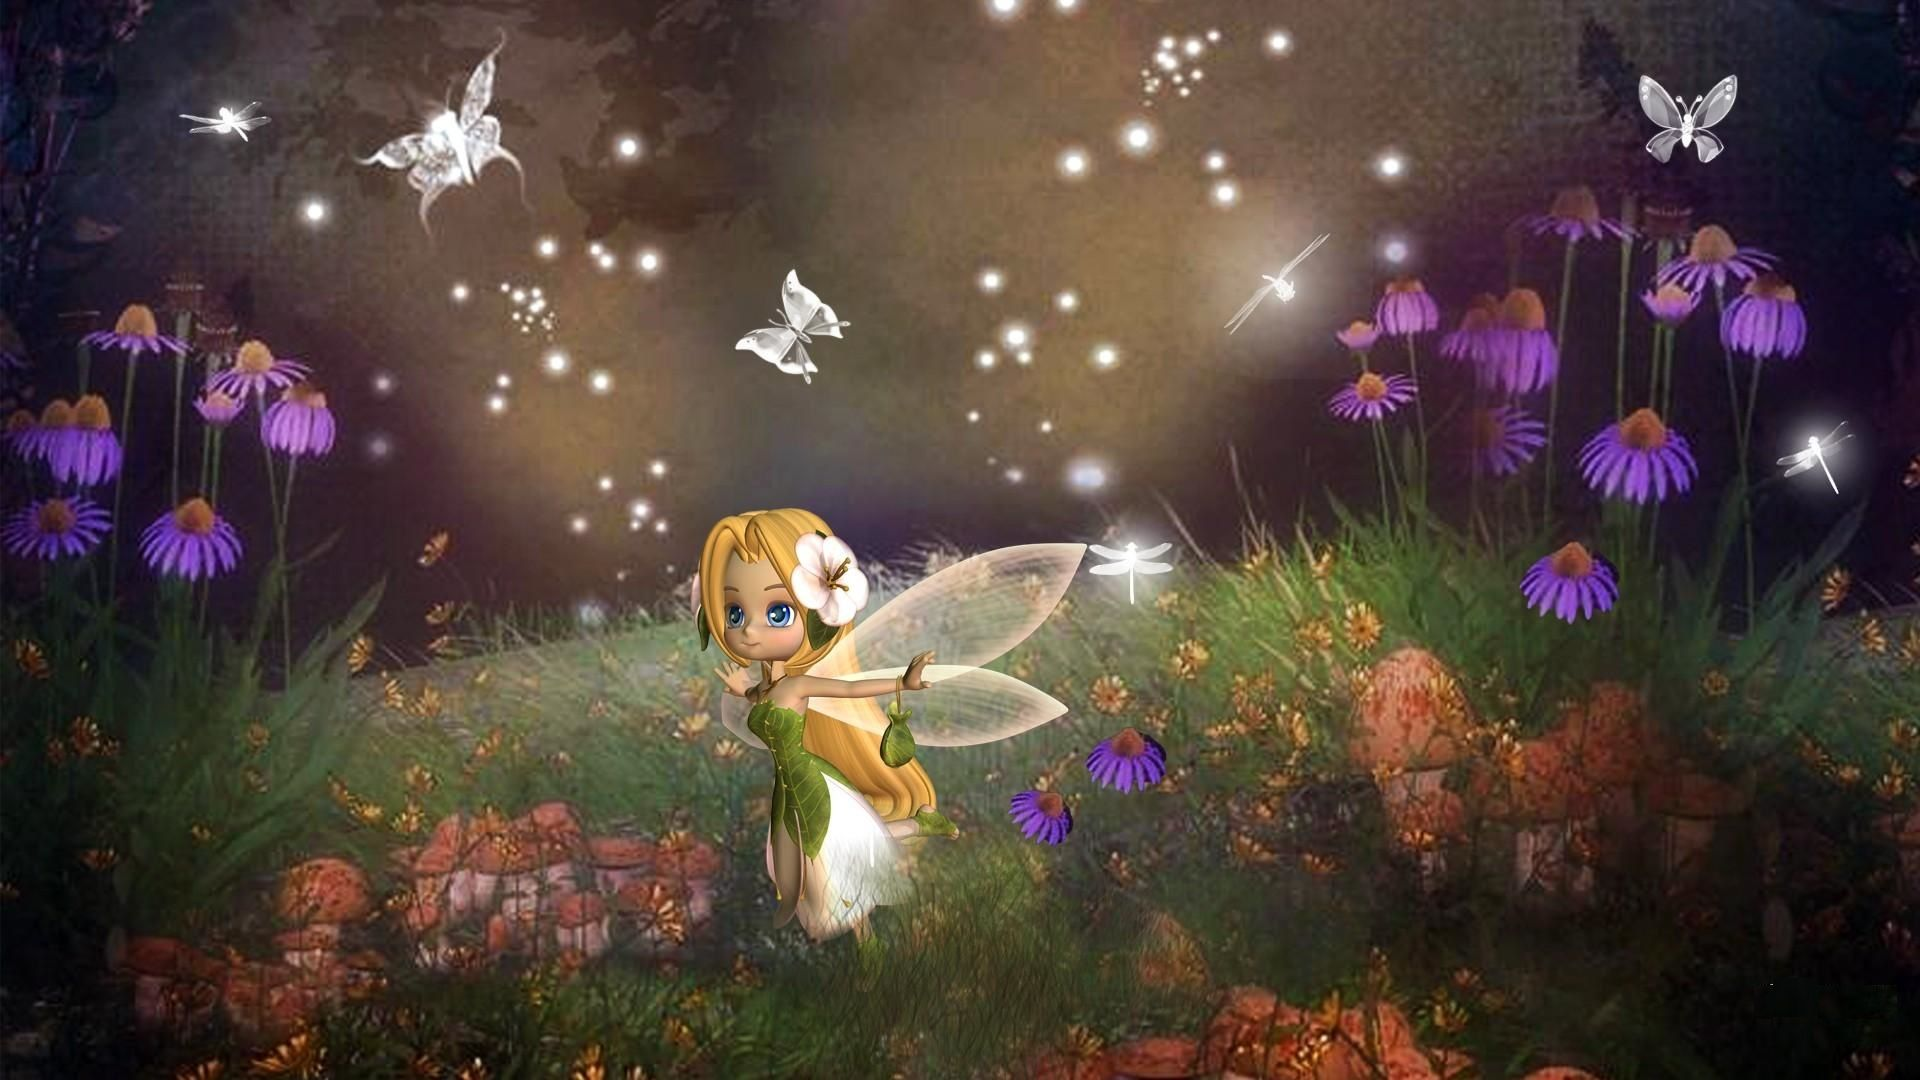 Magical Fantasy Hd Wallpapers That Will Take Your Breathe: Free Animated Fairy Pictures Animated Fairies Wallpapers